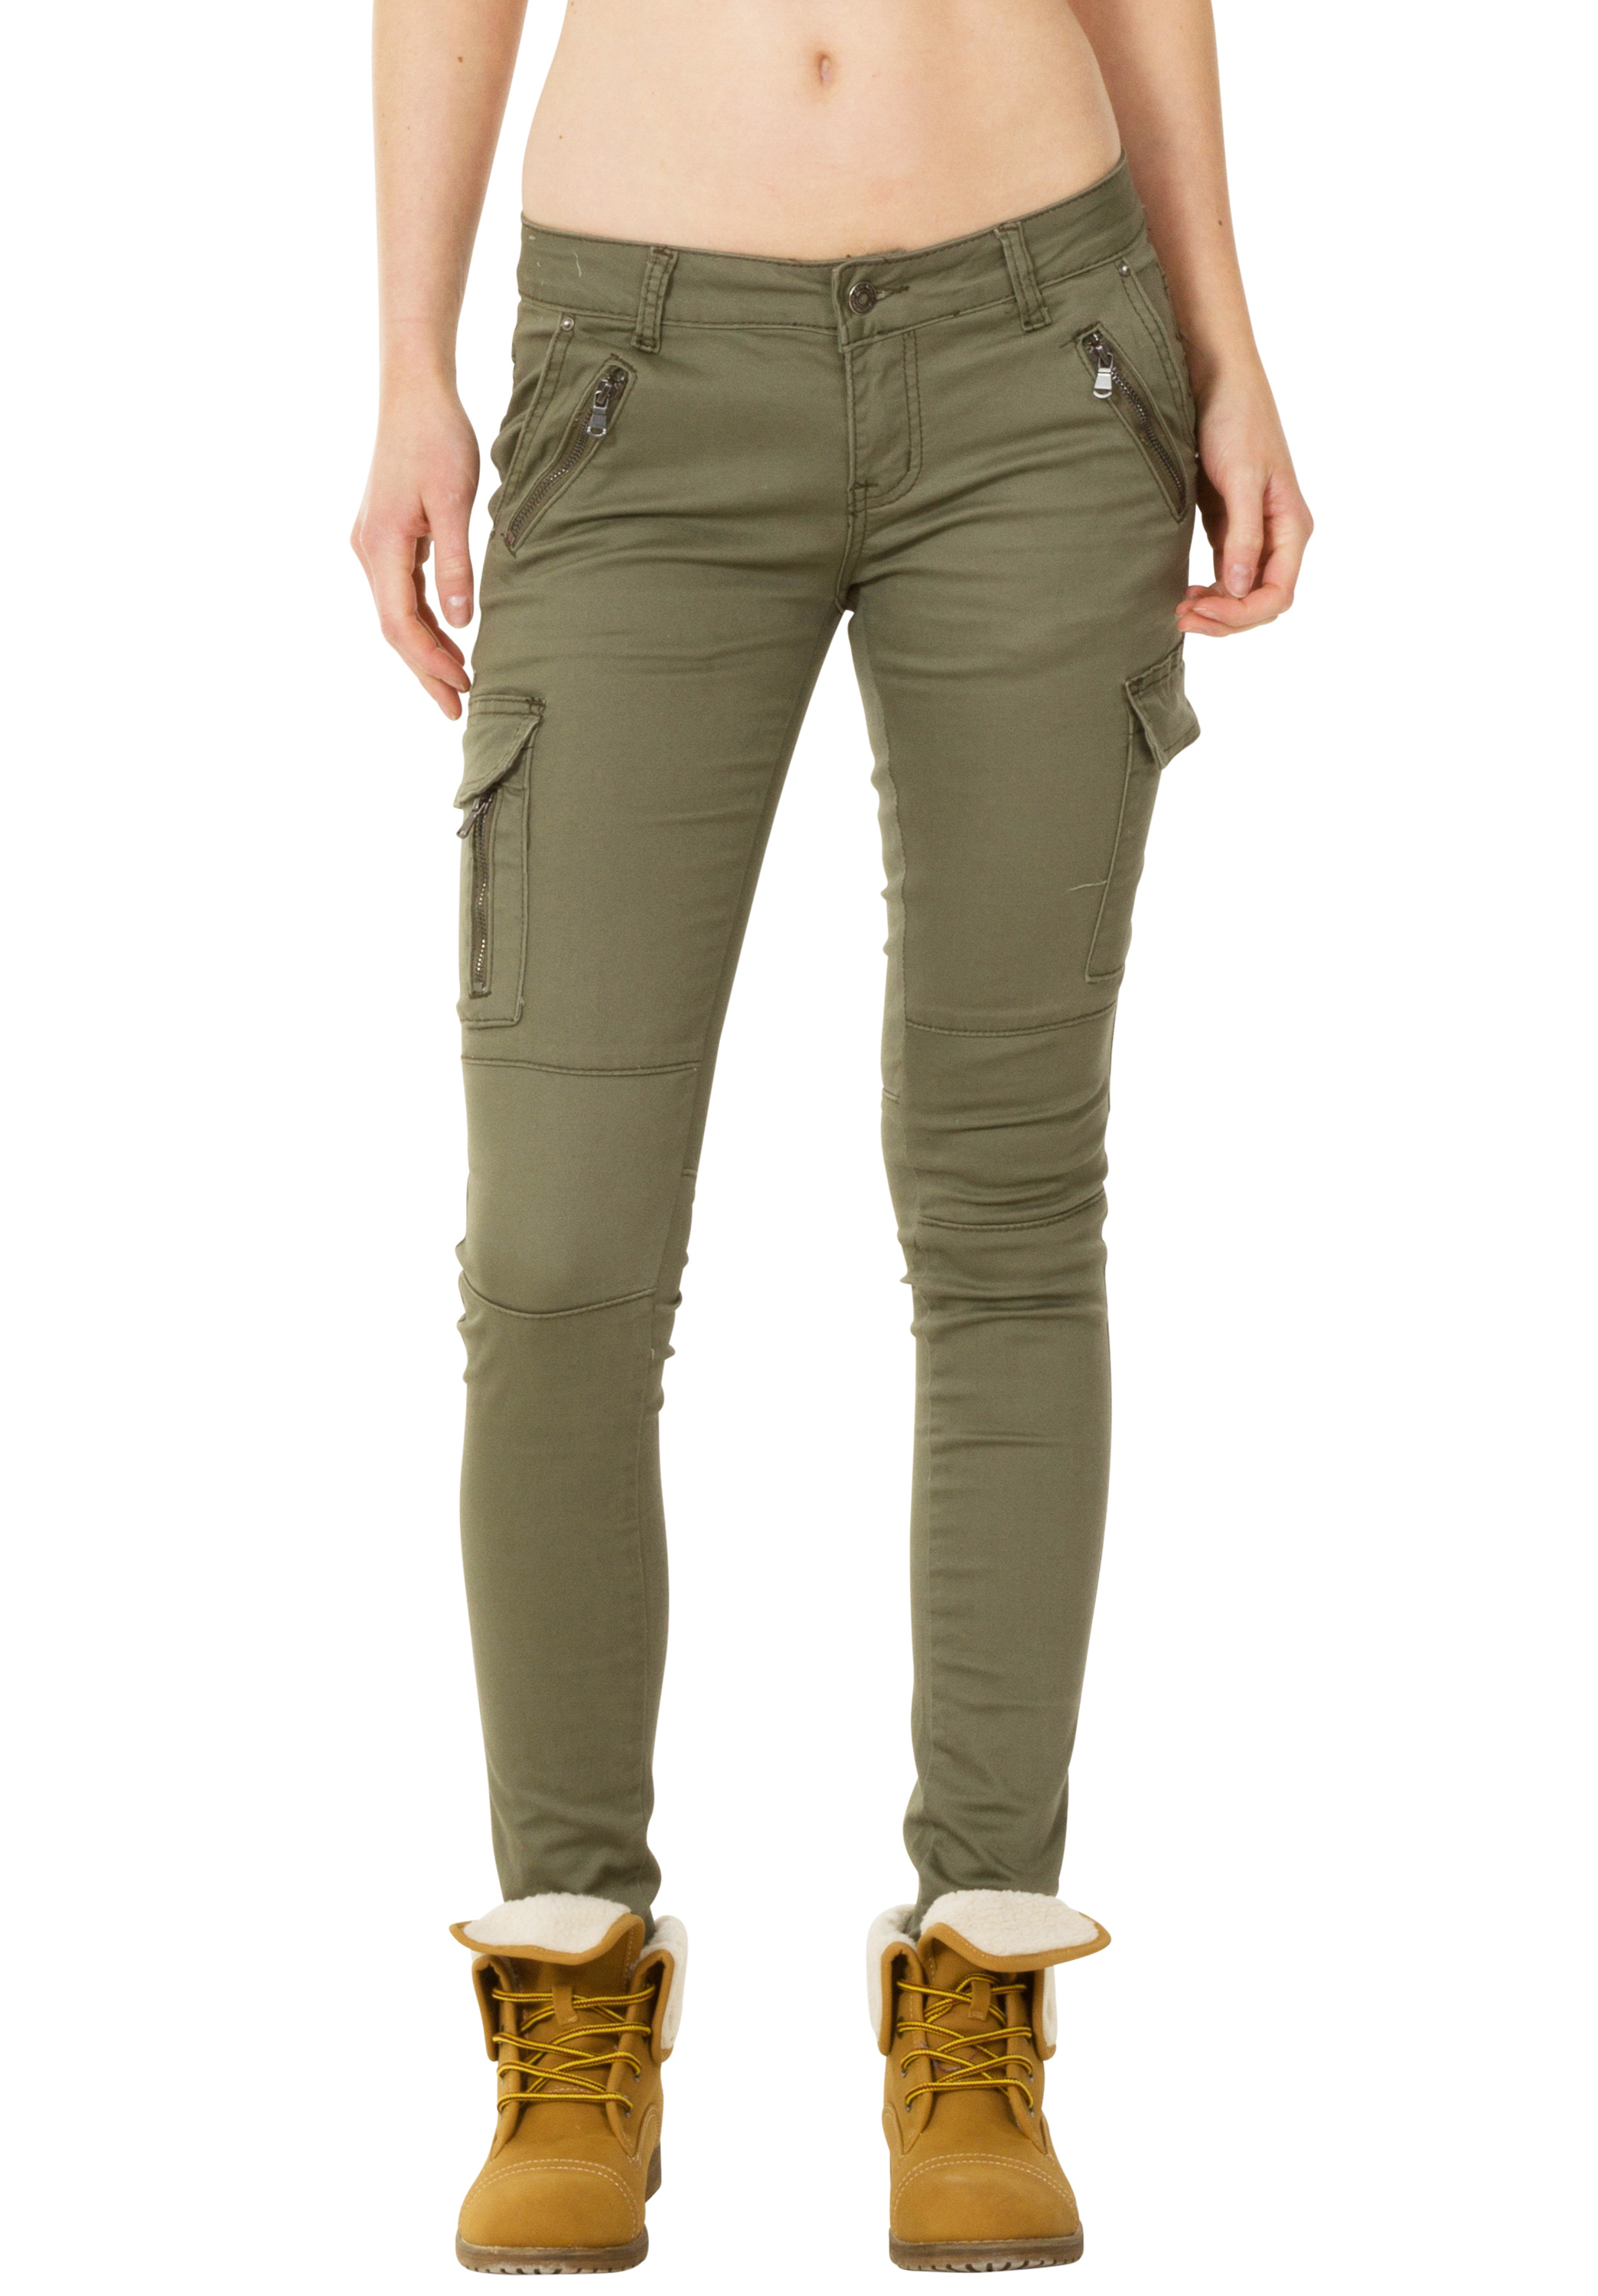 New Womens Low Rise Green Slim Skinny Stretch Combat Pants ...